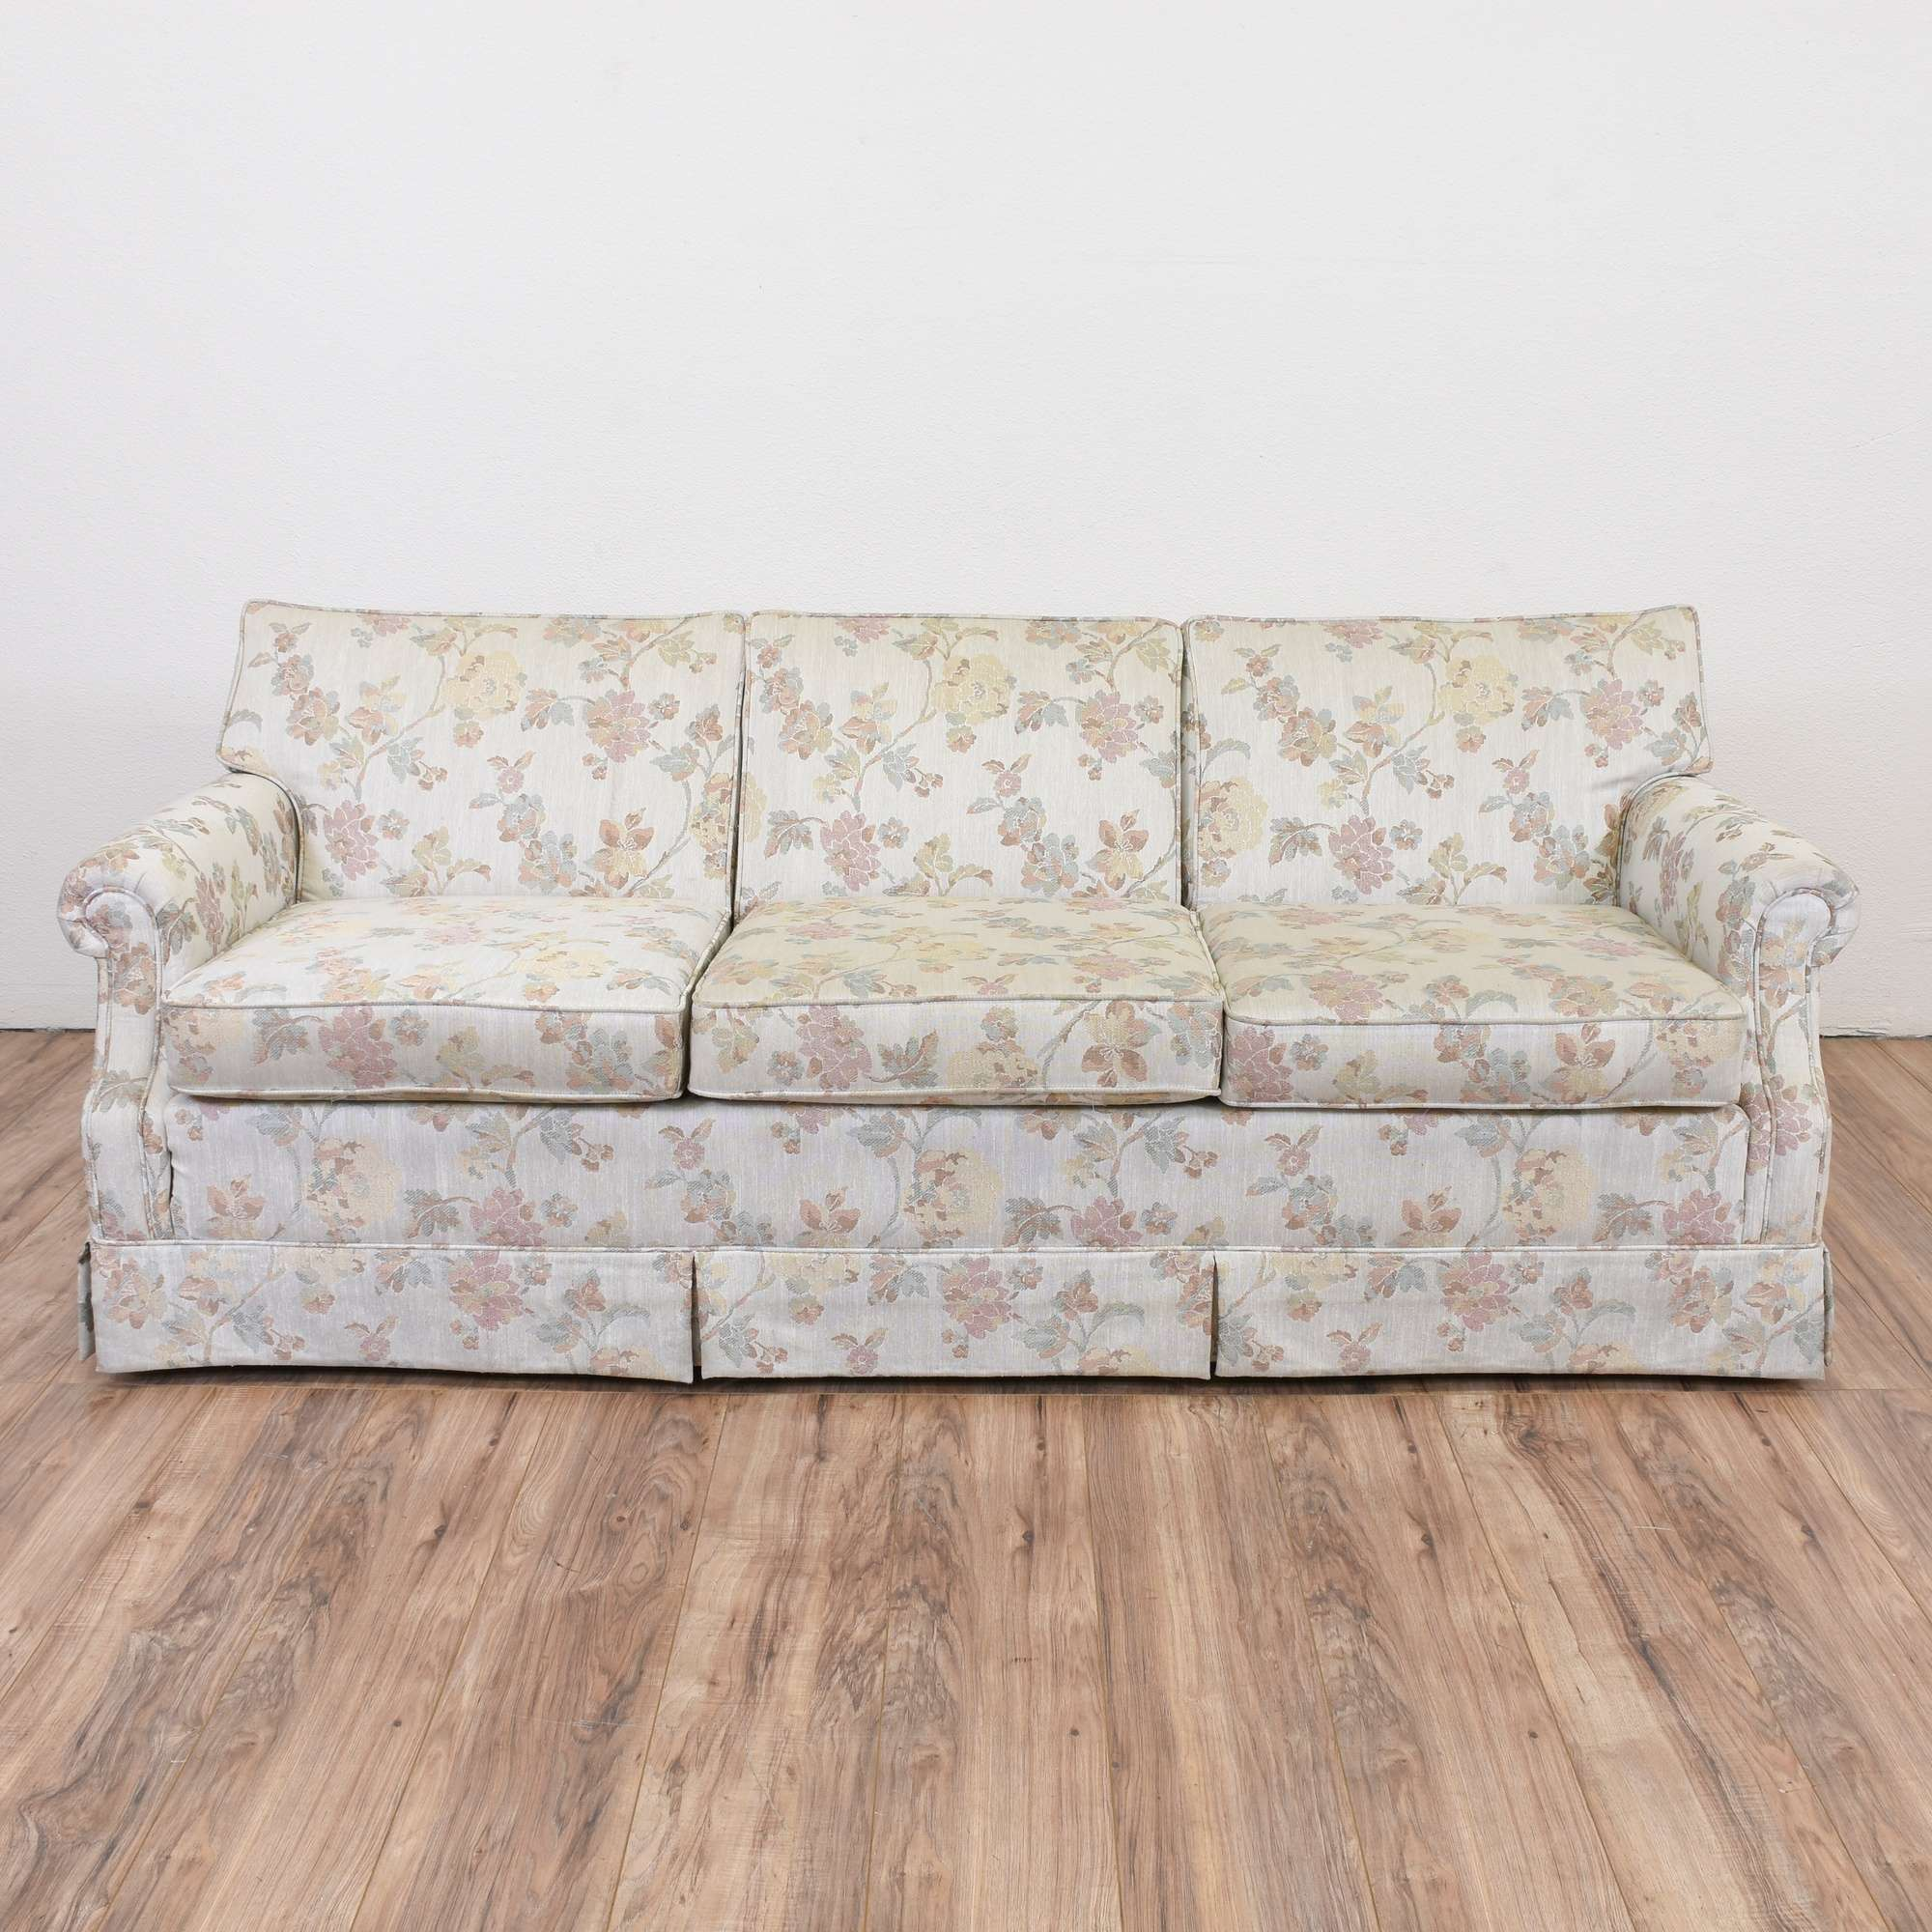 to dfs chiltern sofa vintage large estates know billion floral couch